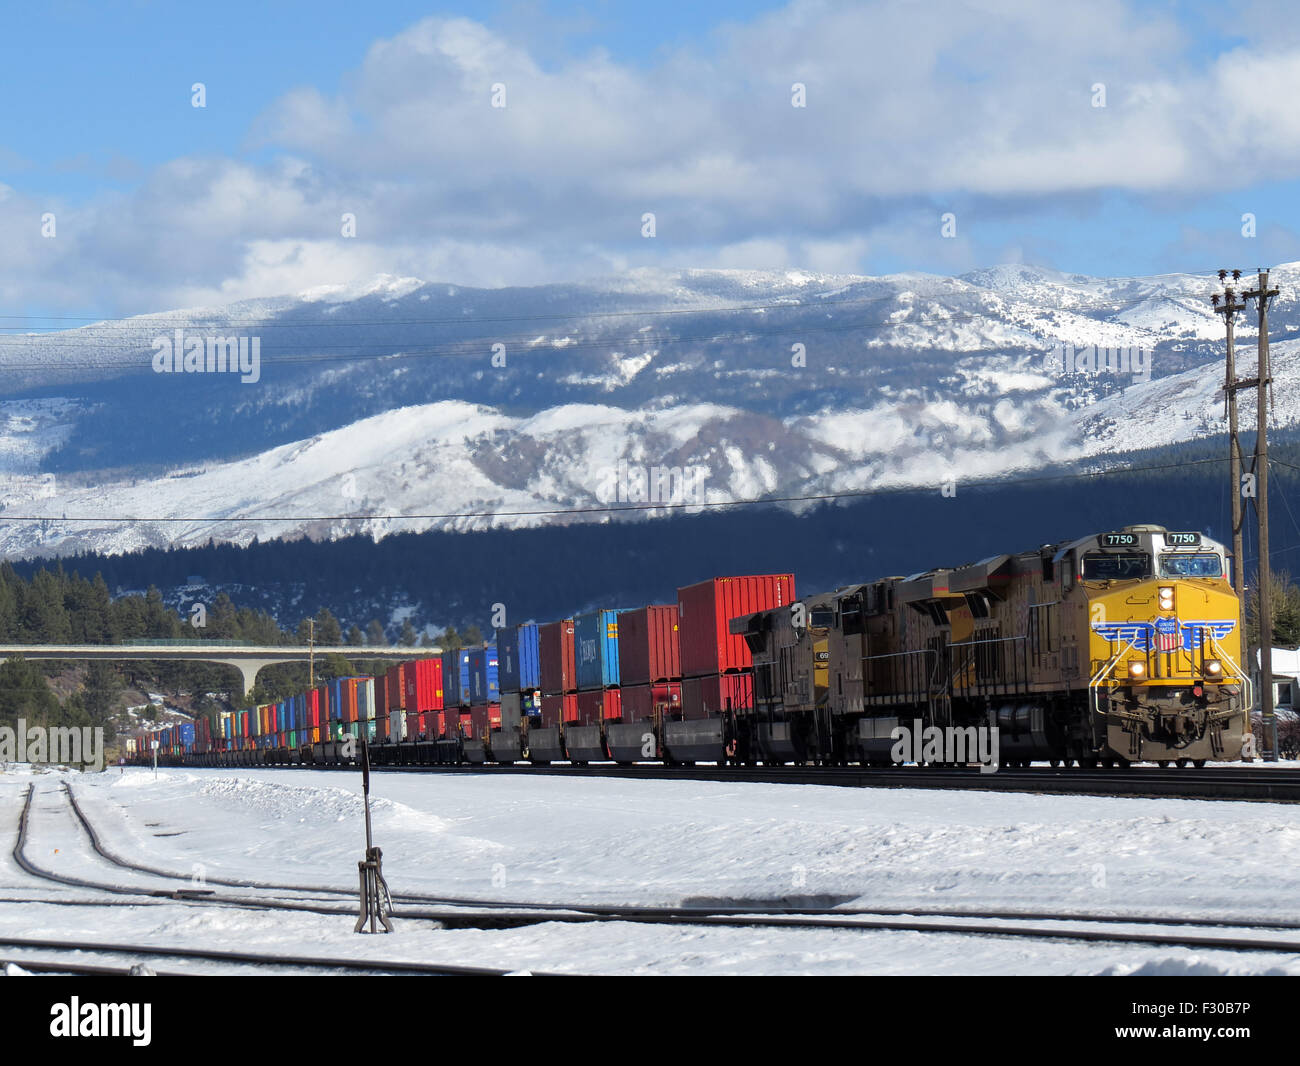 Trains in the Snow in Truckee, California - Stock Image